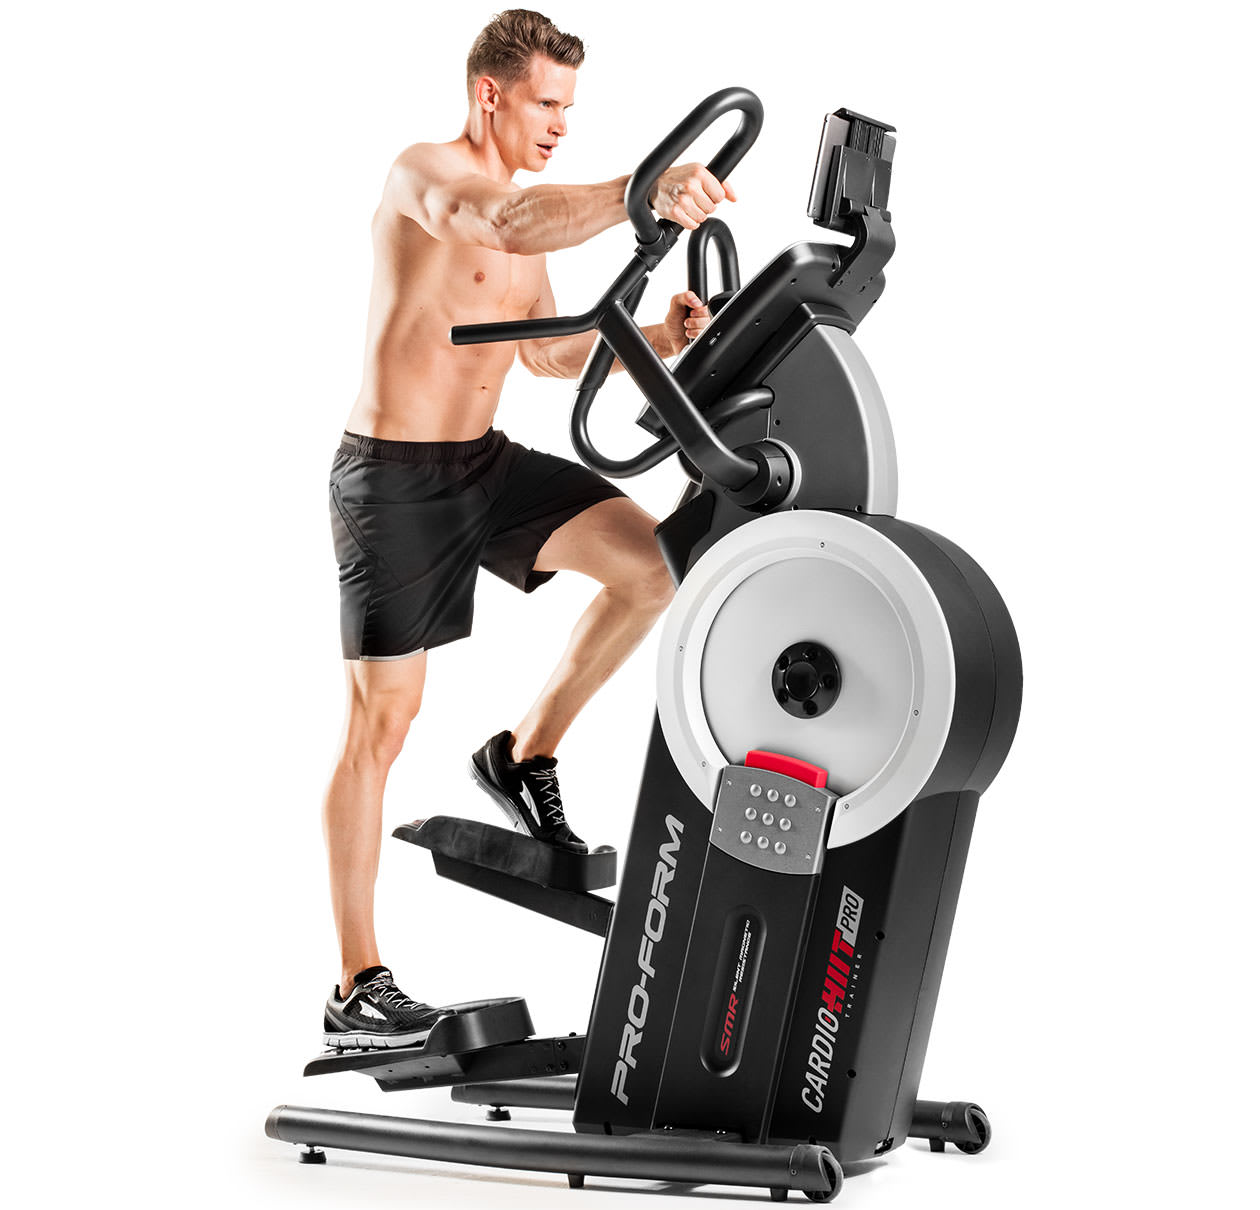 Proform SMART HIIT Trainer Pro gallery image 3